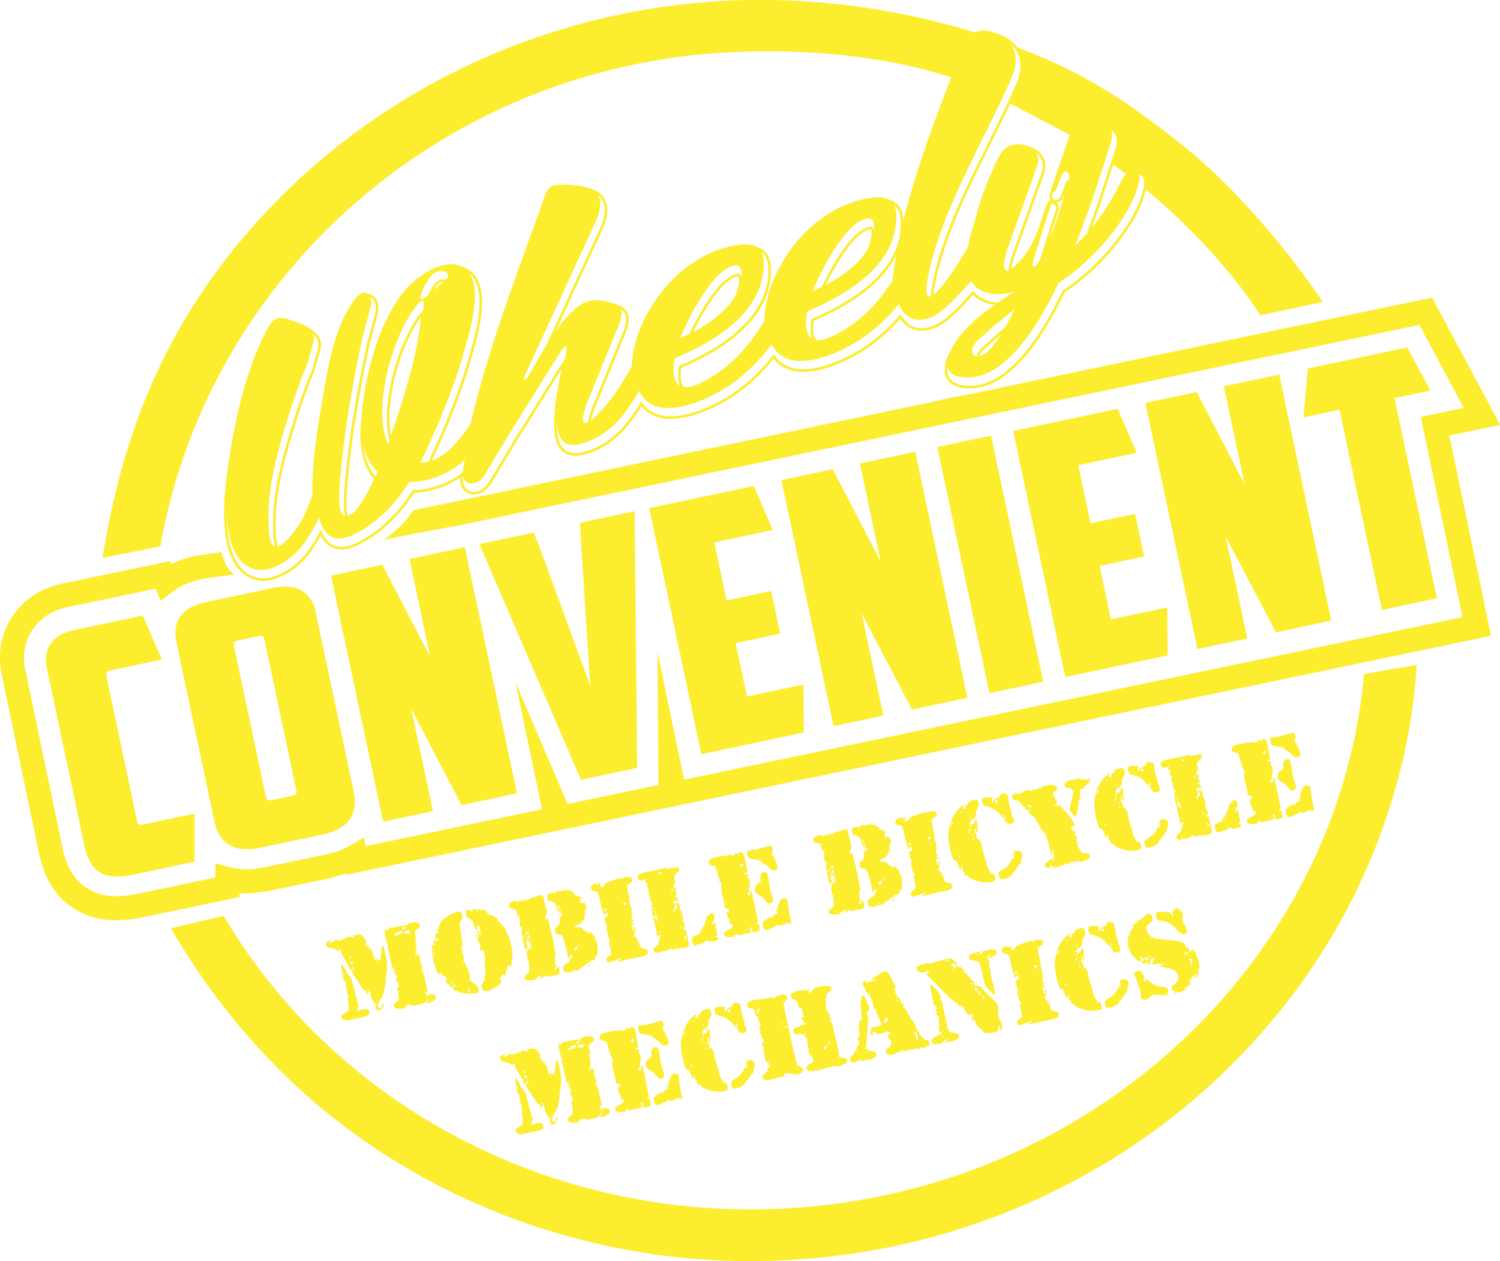 Expert Mobile Bicycle Servicing At Your Home Or Office